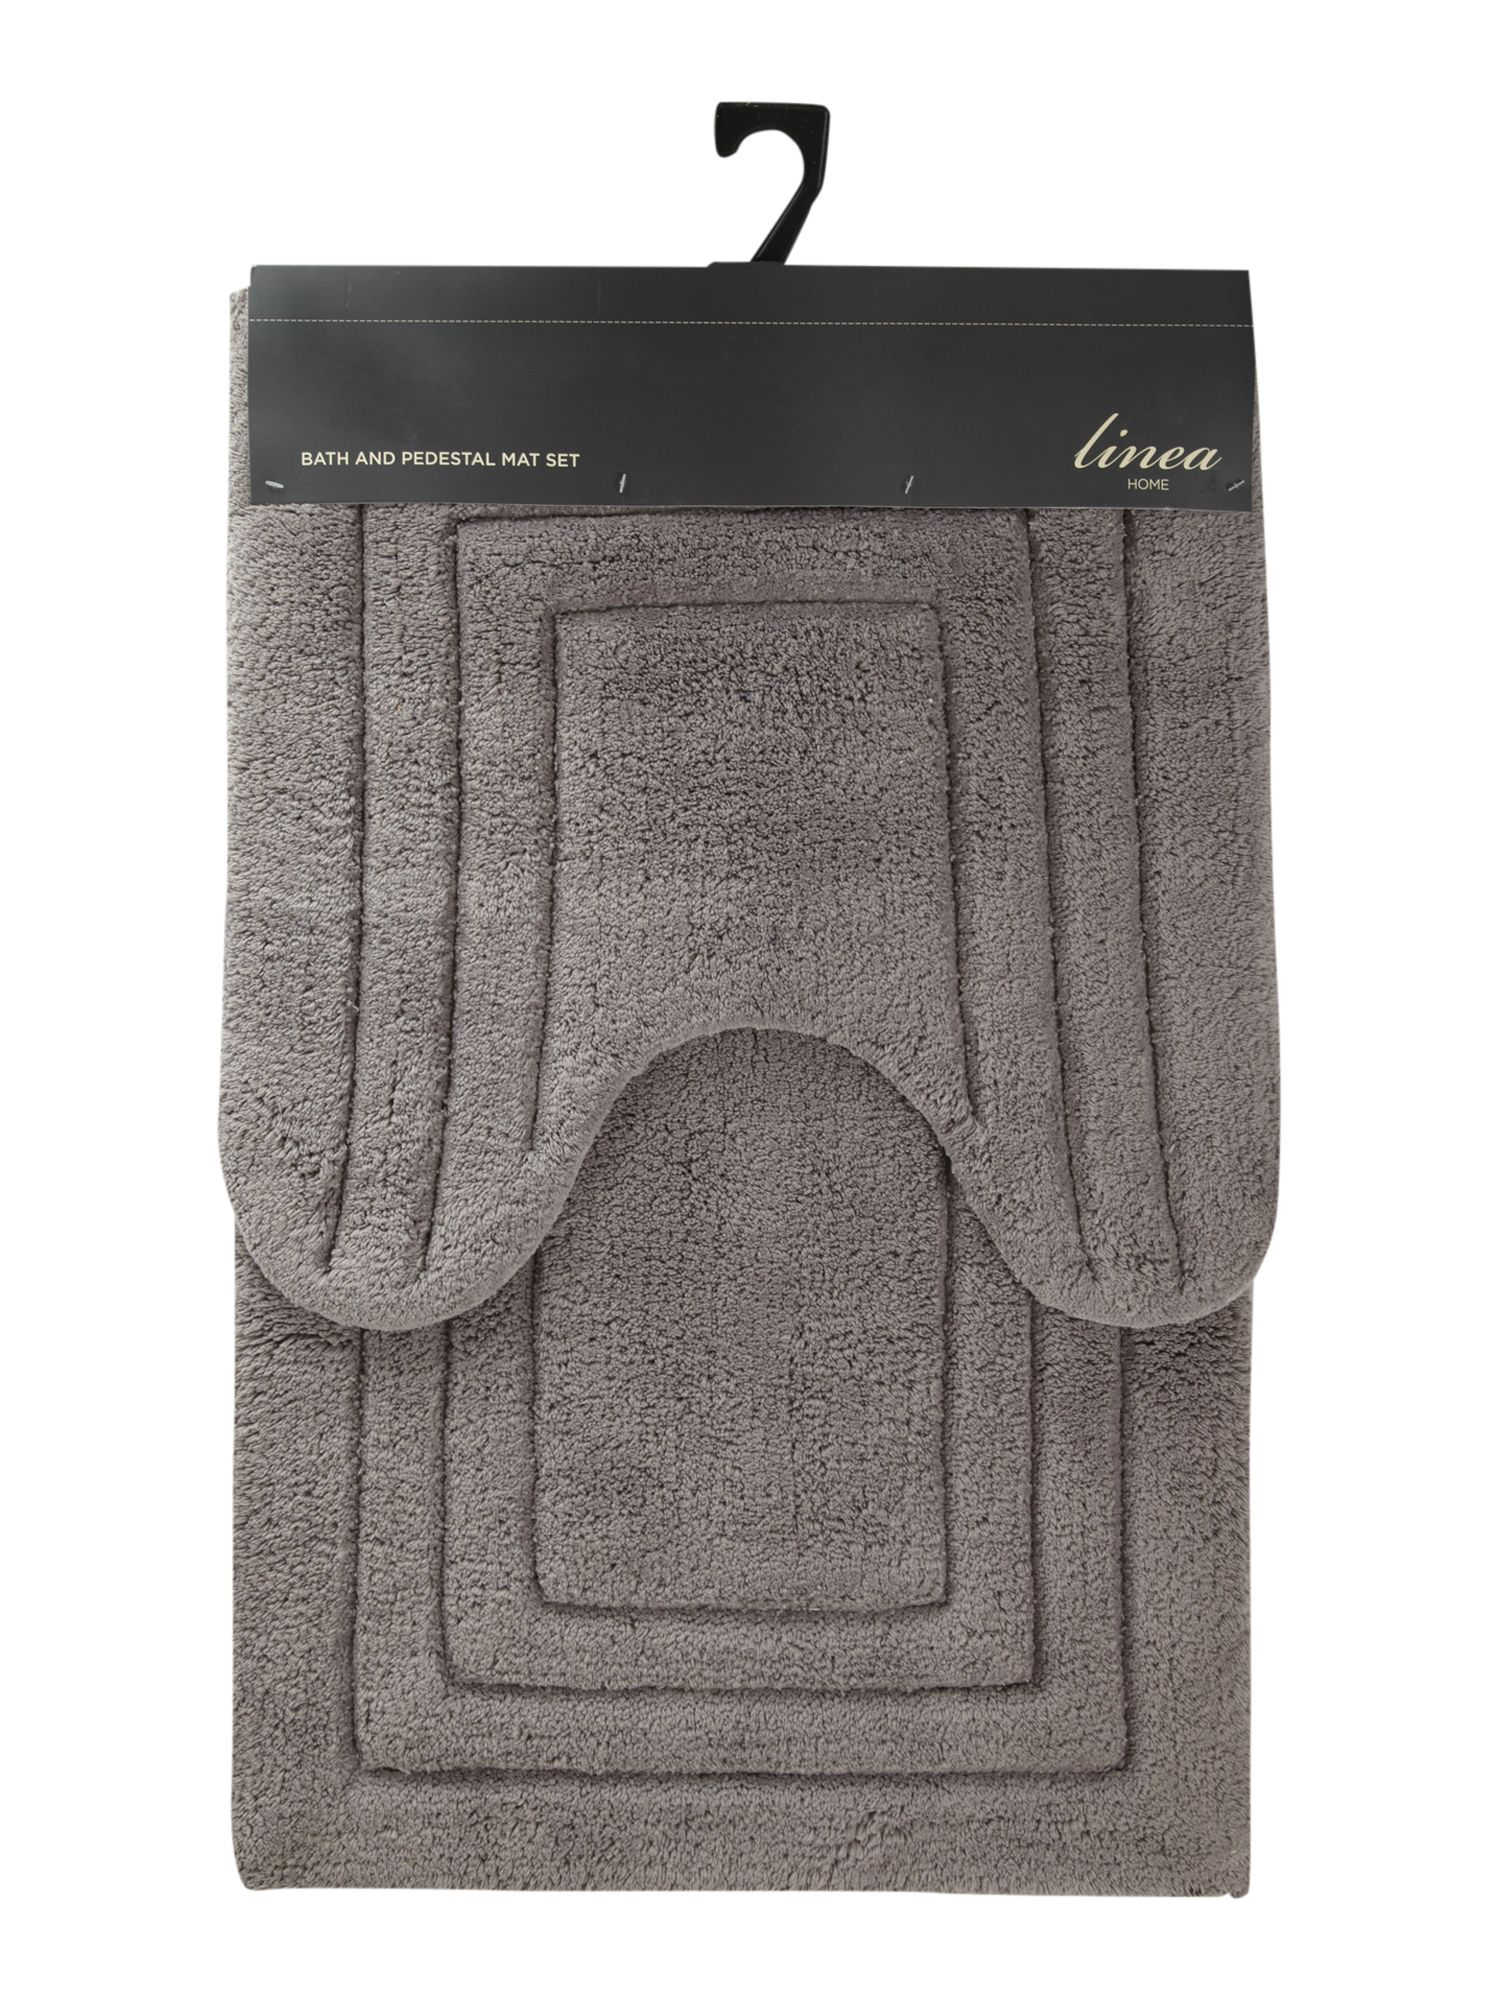 Bath mat and pedestal mat set in cool grey